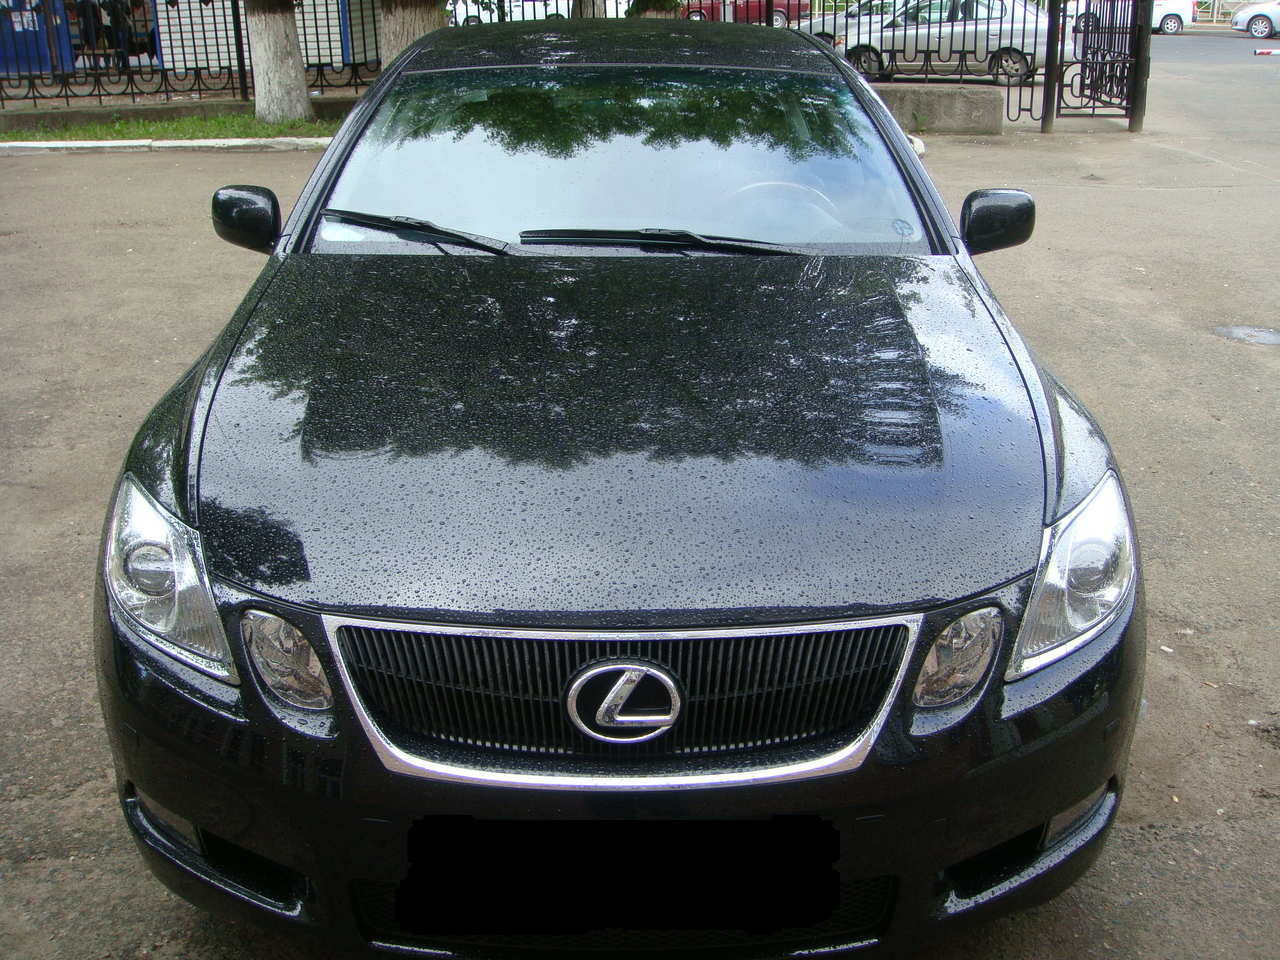 2006 lexus gs 300 used cars for sale autos post. Black Bedroom Furniture Sets. Home Design Ideas